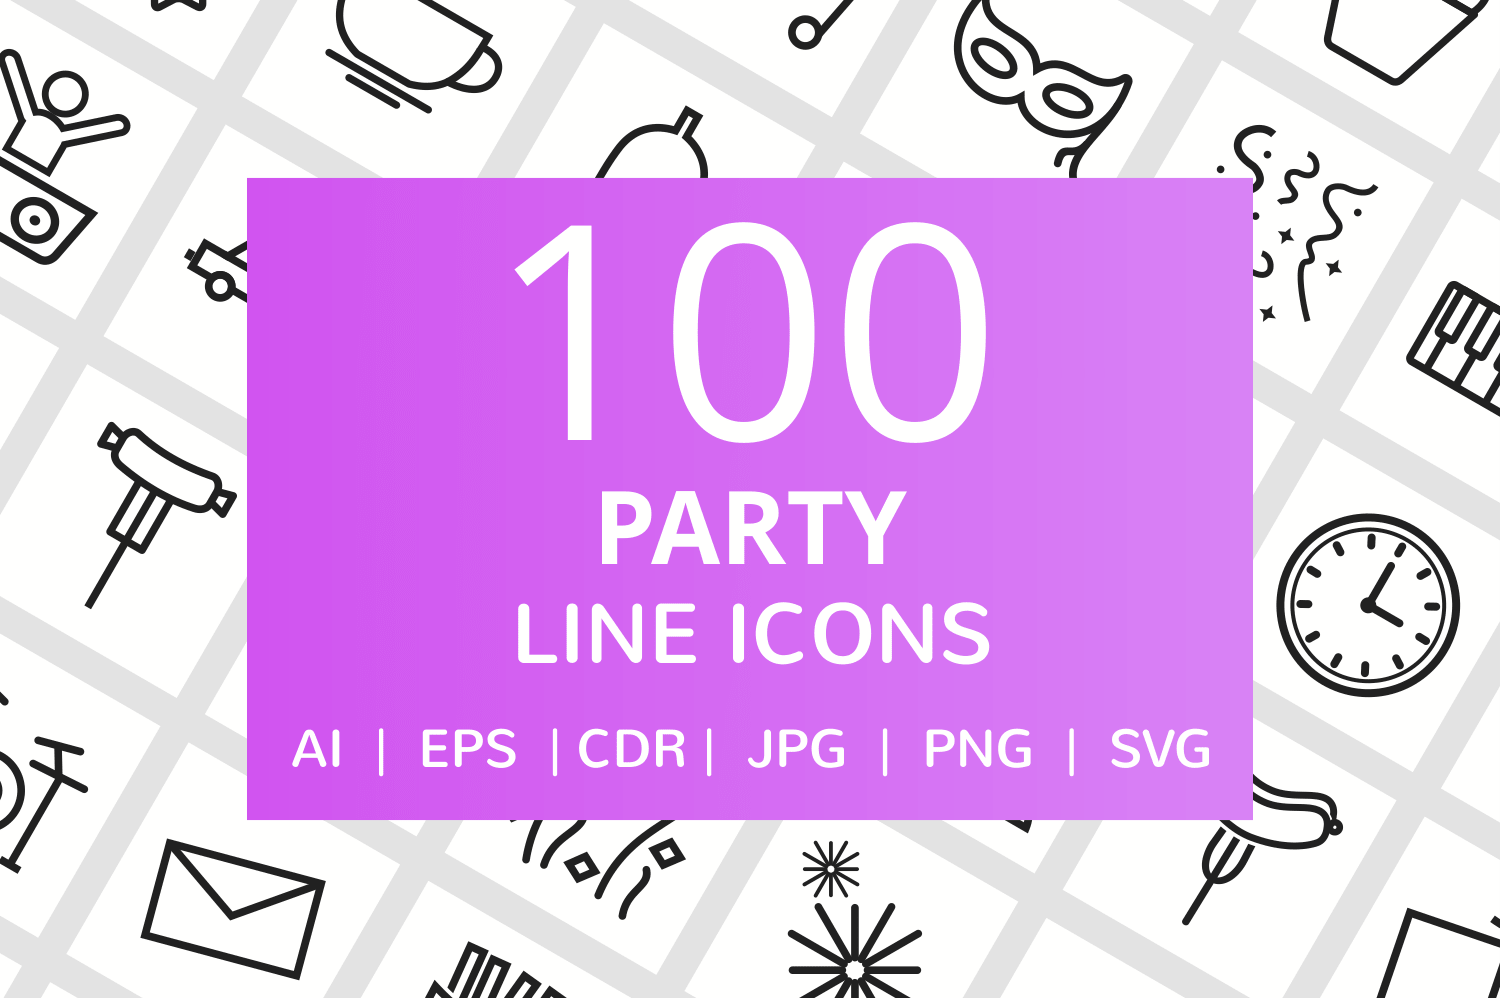 100 Party Line Icons example image 1